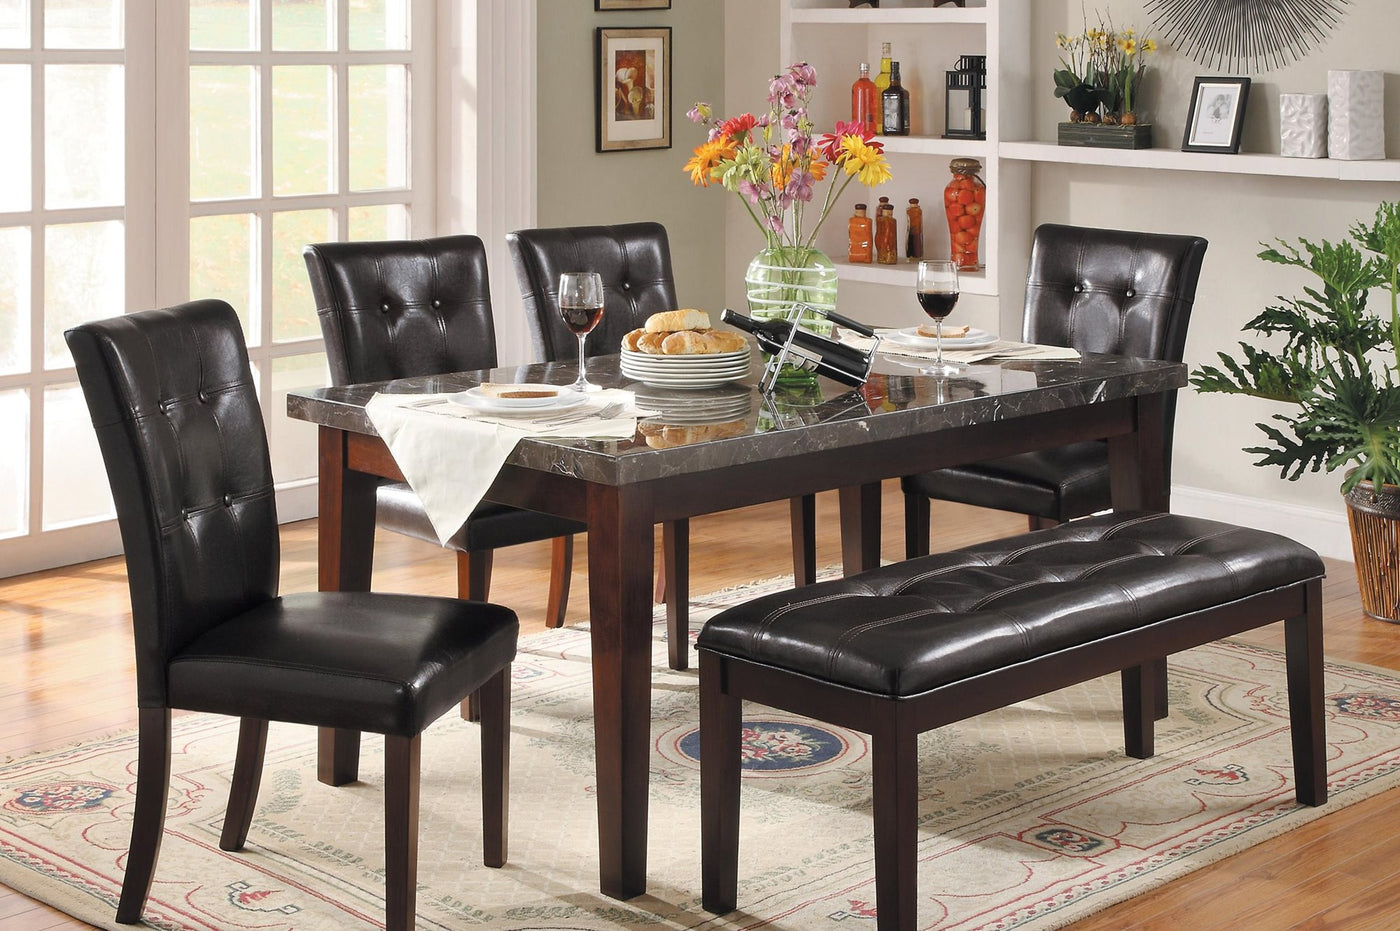 Homelegance Decatur Dining Bench In Espresso Leatherette